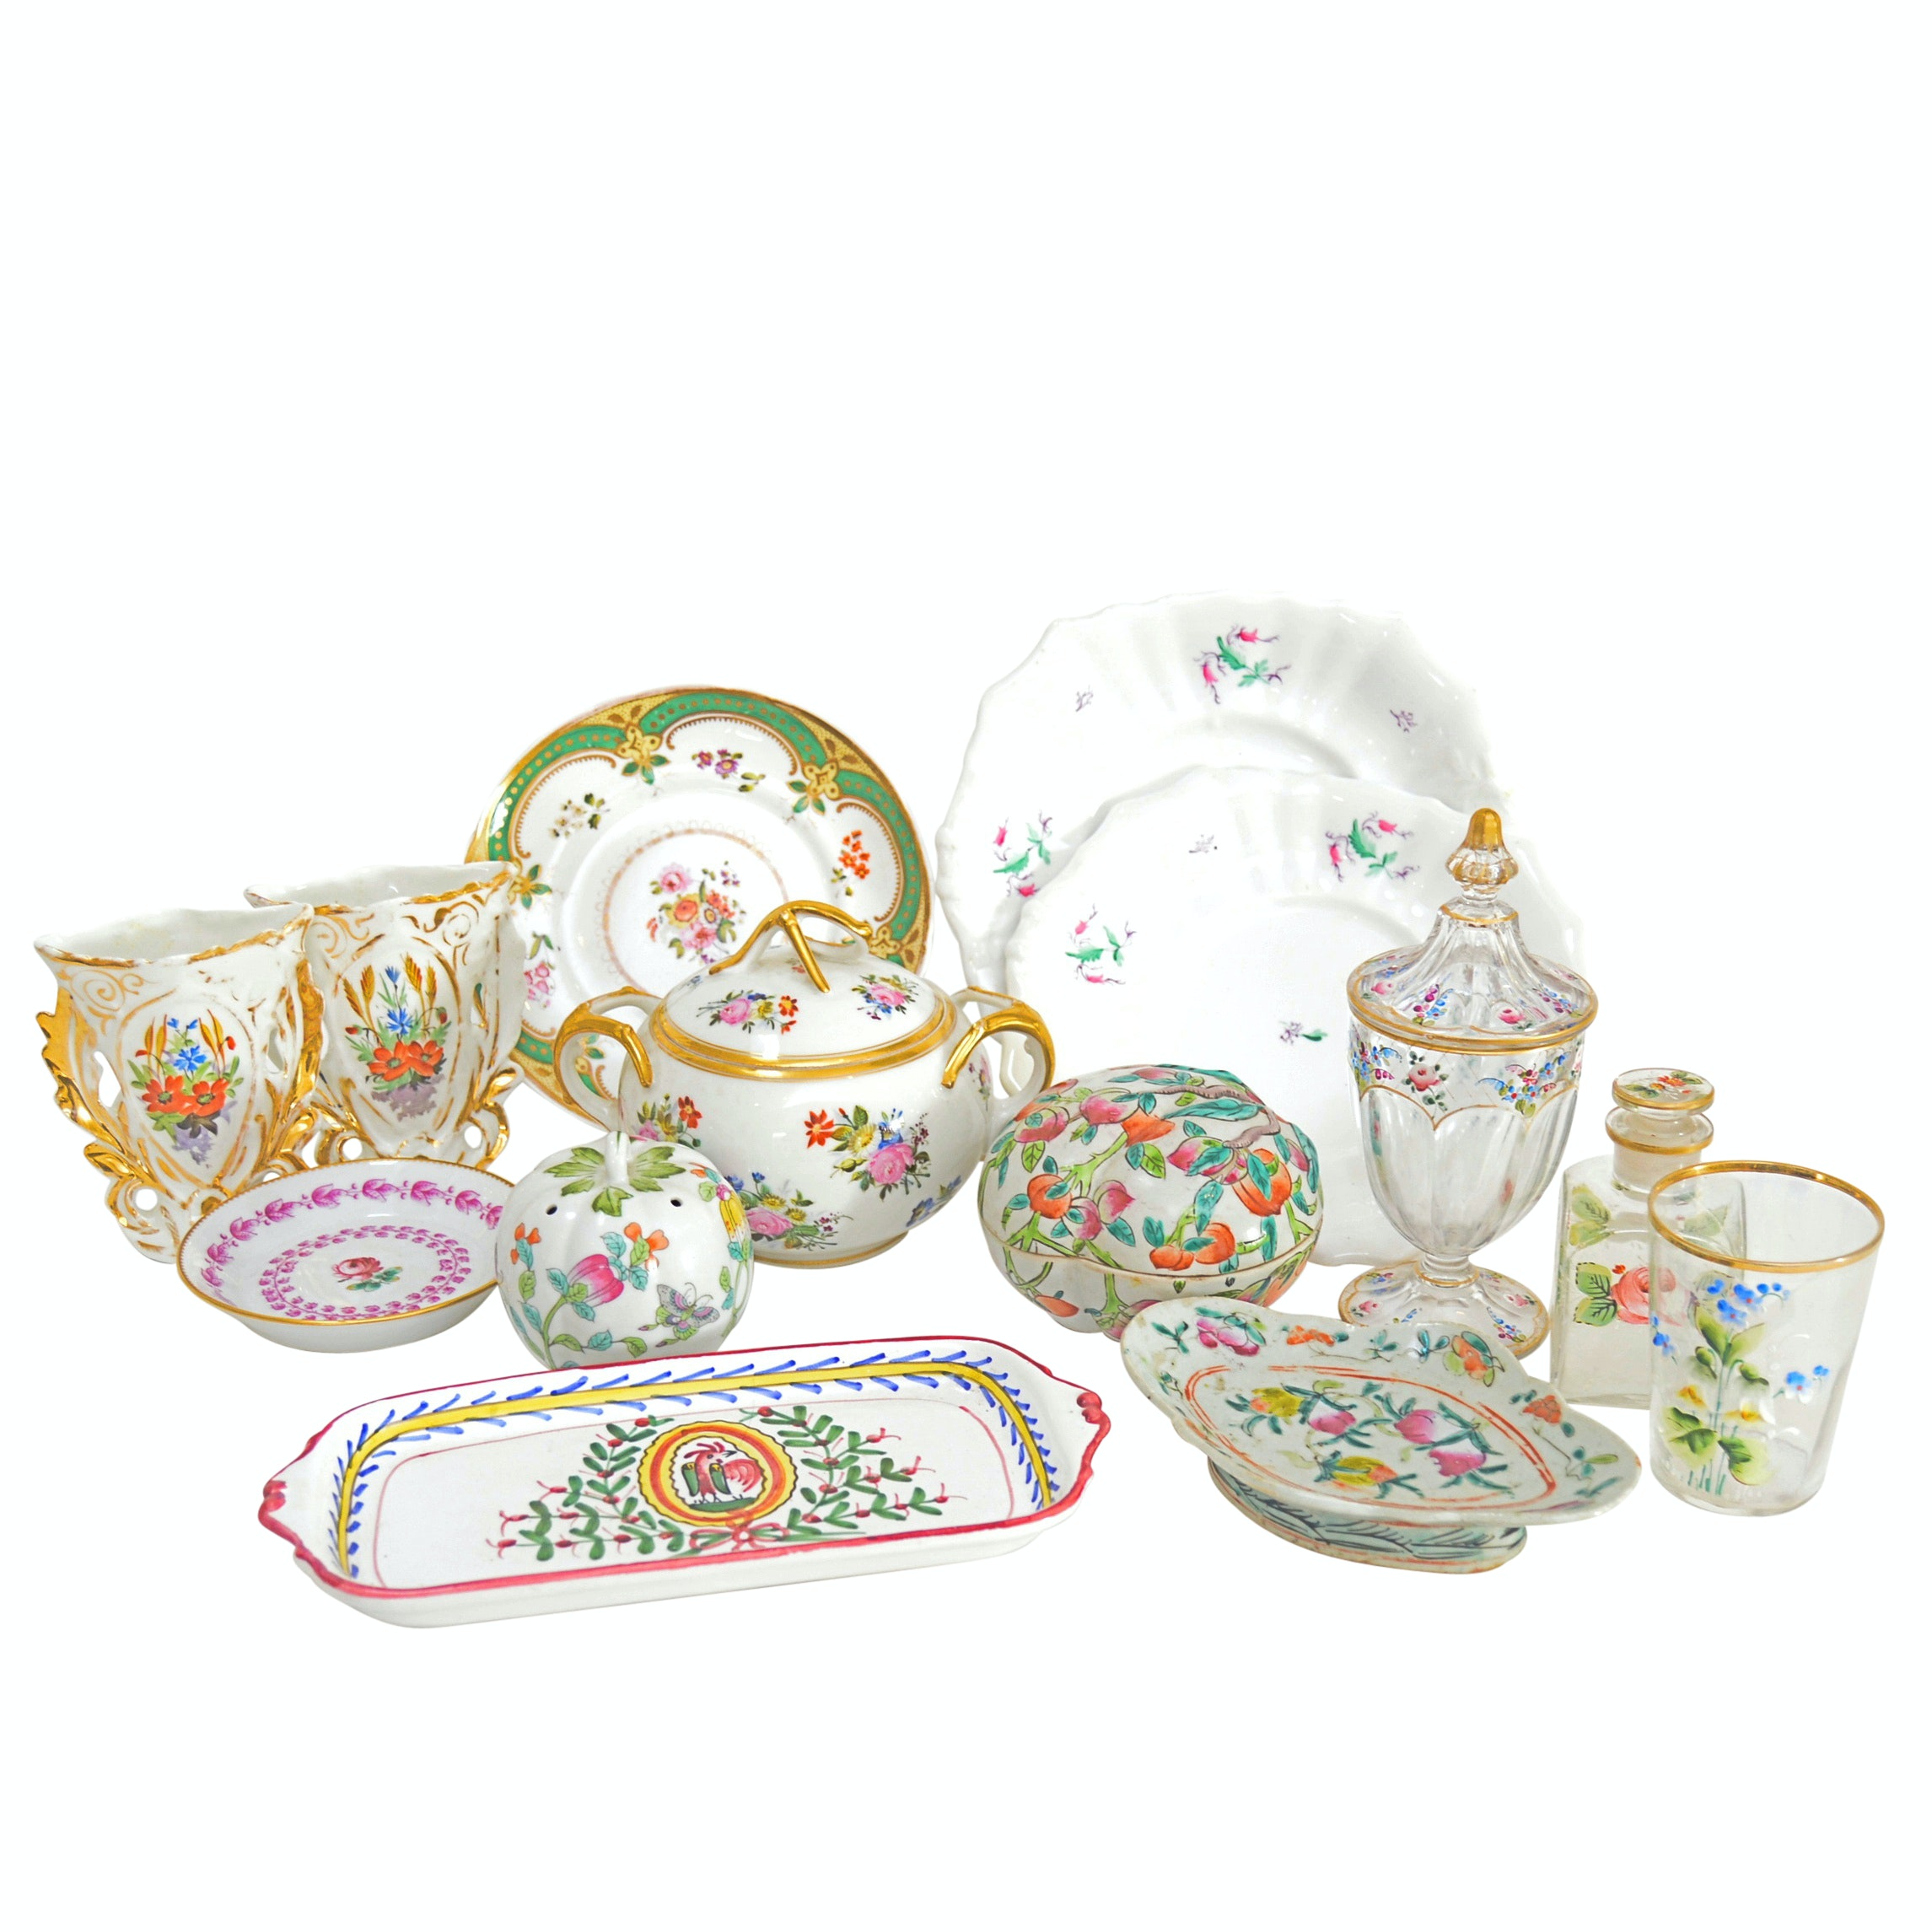 Vintage Porcelain Serveware and Vases with Ginori